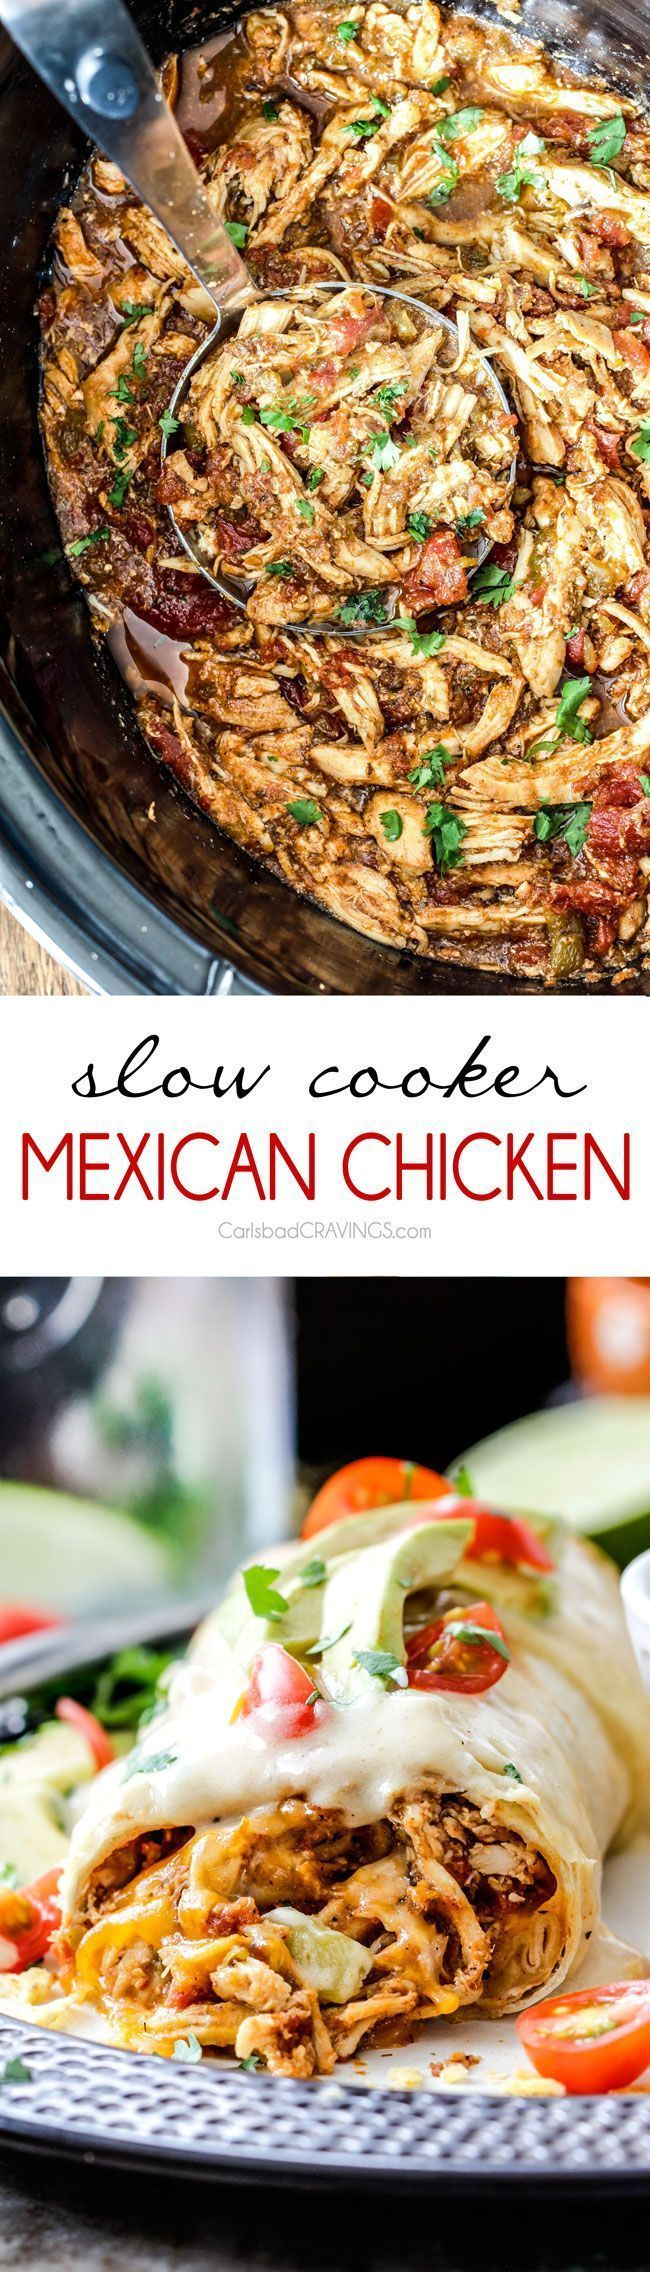 Easy Slow Cooker Shredded Mexican Chicken - Simmered with Mexican spices, salsa and green chilies for the BEST Mexican chicken perfect for tacos, burritos, tostadas, salads, etc.